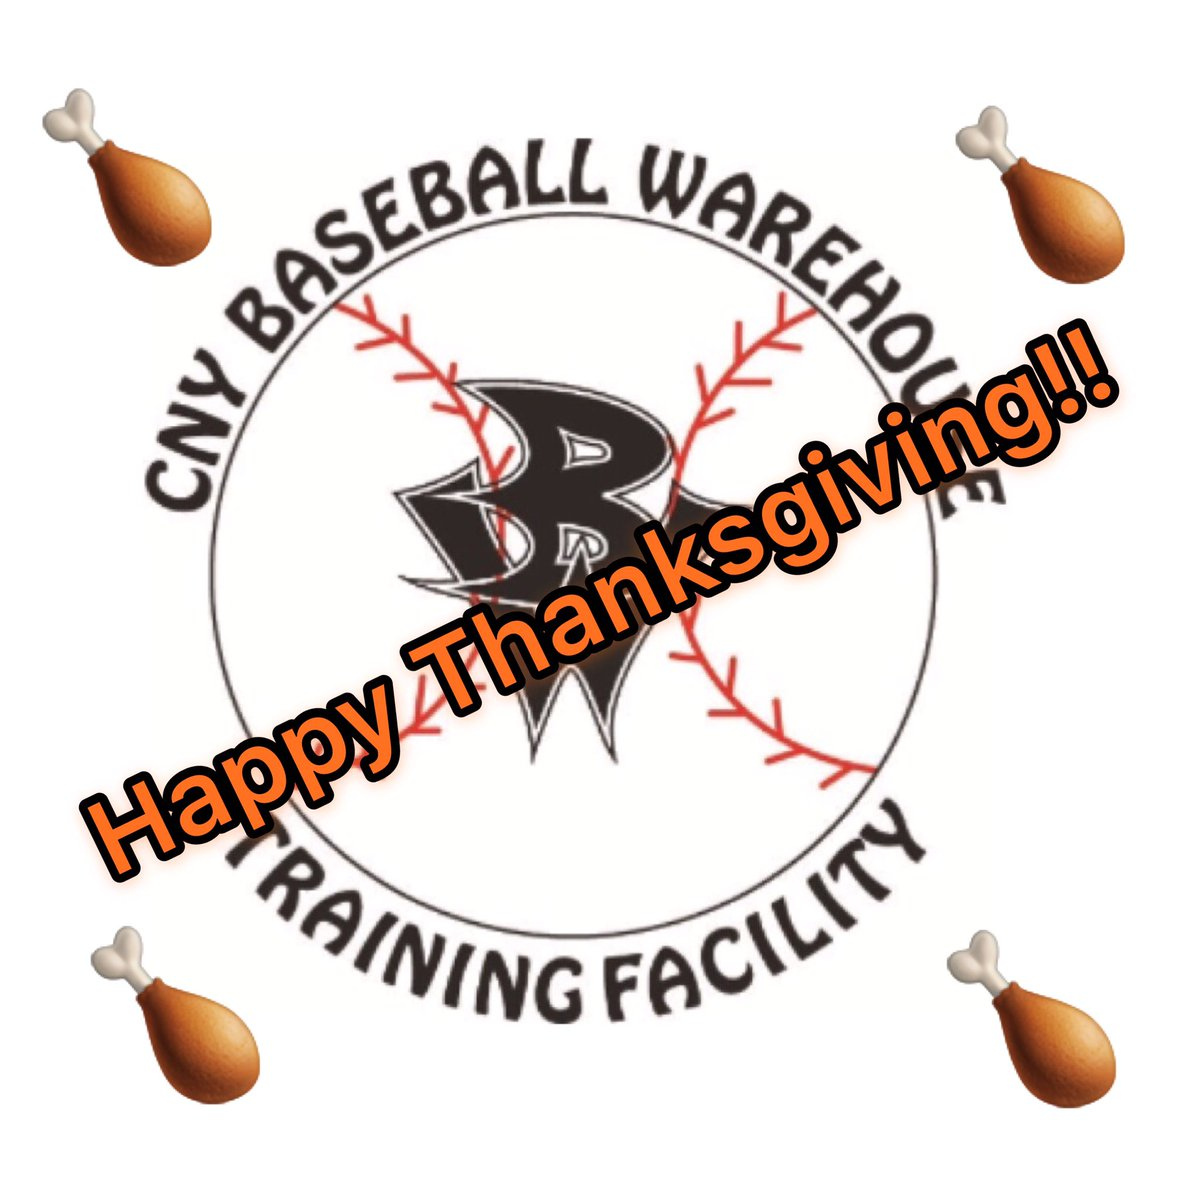 Happy Thanksgiving to all of our Warehouse/Baseball U-NY players and families and all of our Warehouse/APE/PUMA athletes and families. Enjoy the time with friends and families. #Warehouse #TheU #GoAPE #PUMA